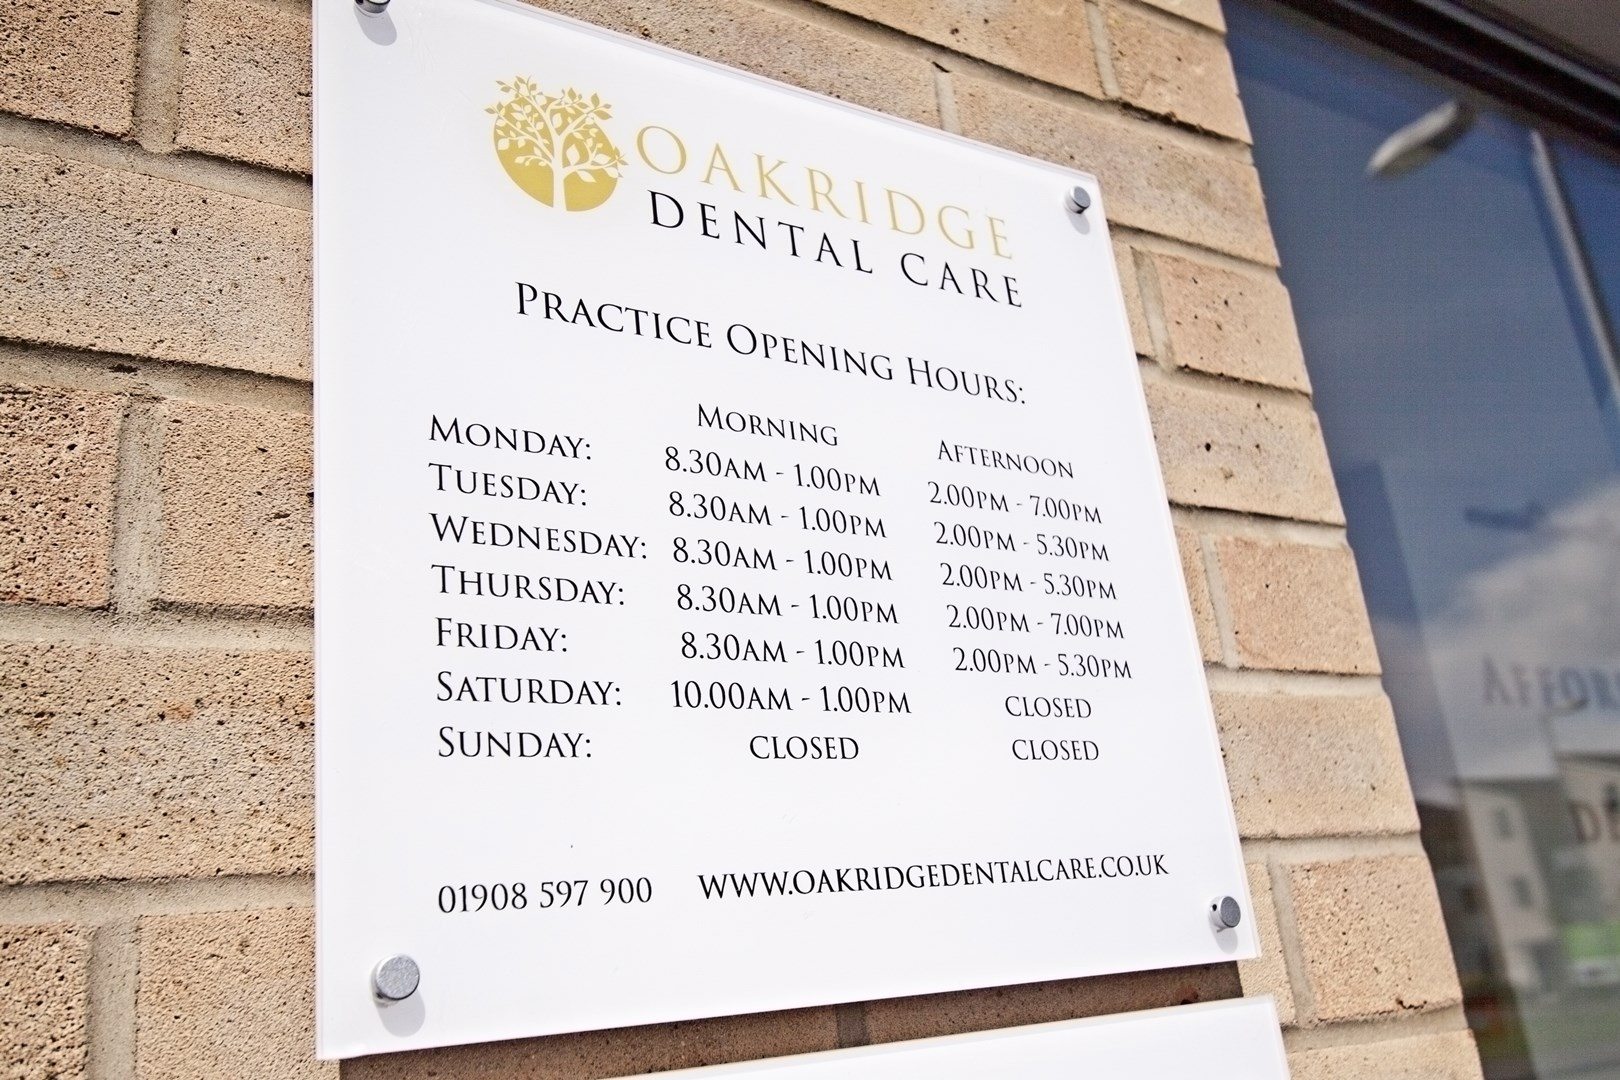 Oakridge Dental Care Opening Hours